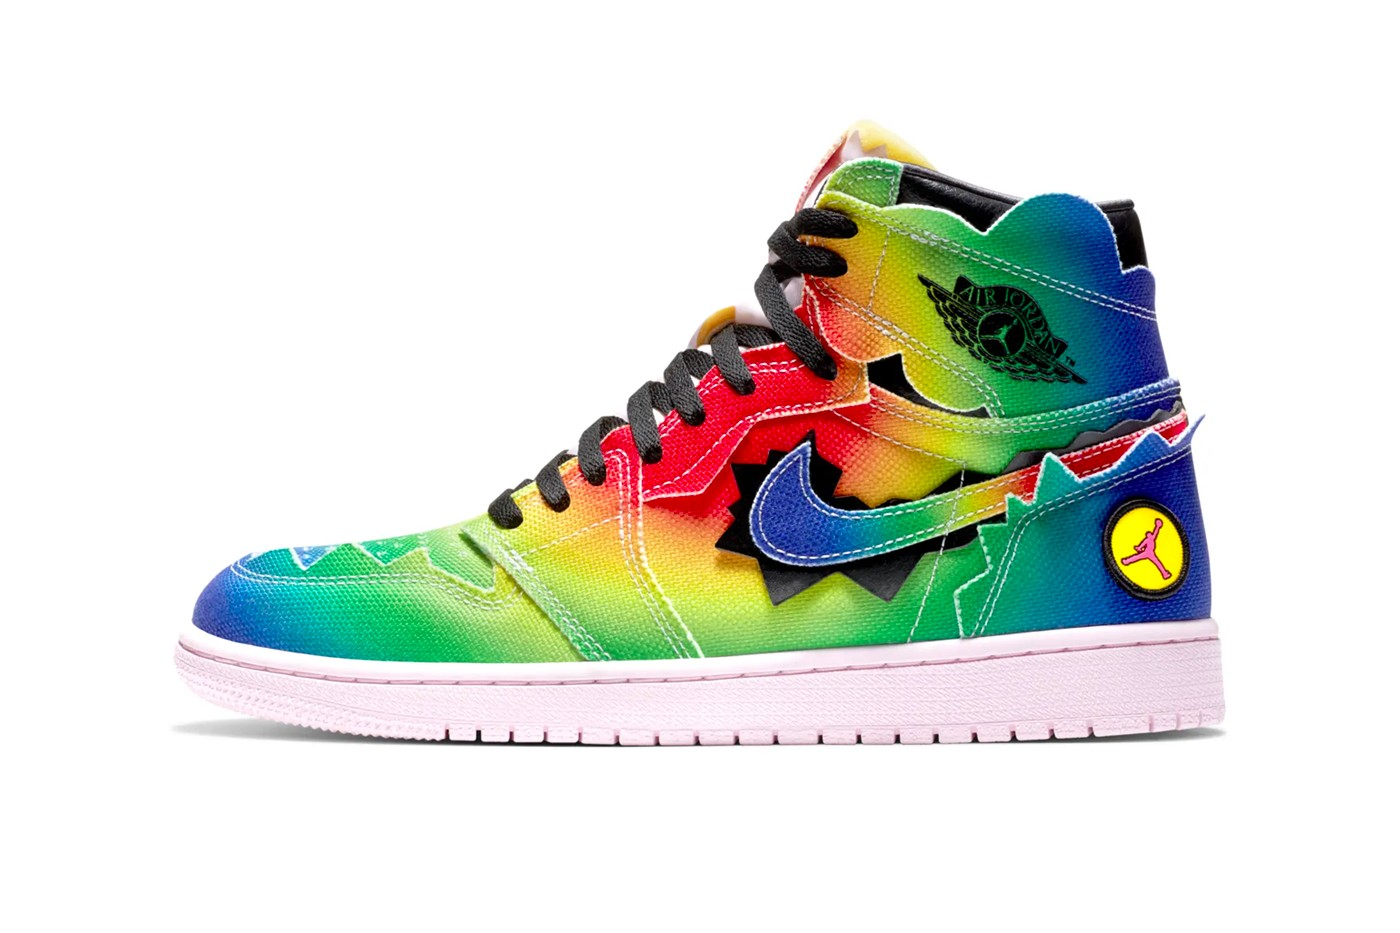 A Closer Look at the J Balvin x Air Jordan 1 Retro High OG